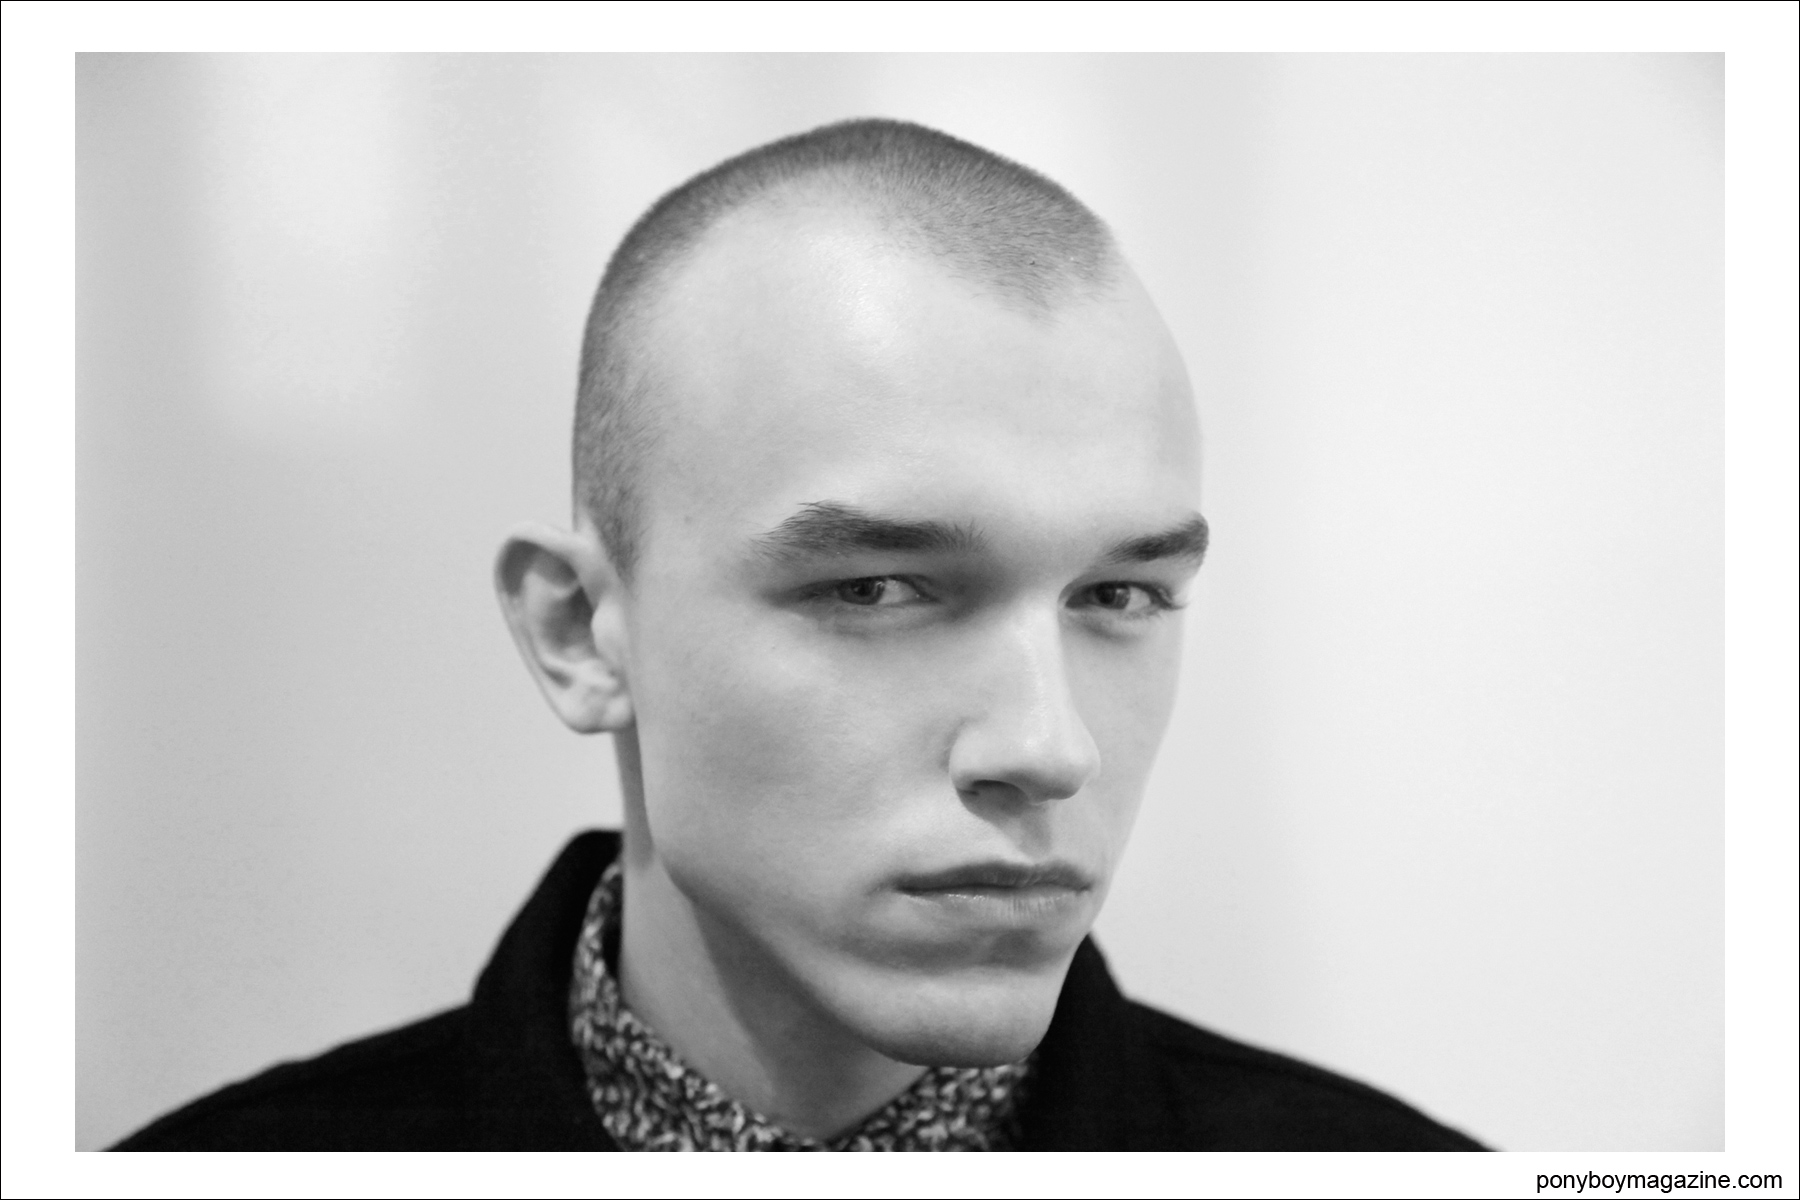 Portrait of a skinhead model, photographed backstage by Alexander Thompson for Ponyboy Magazine at the Duckie Brown A/W 2014 collection.